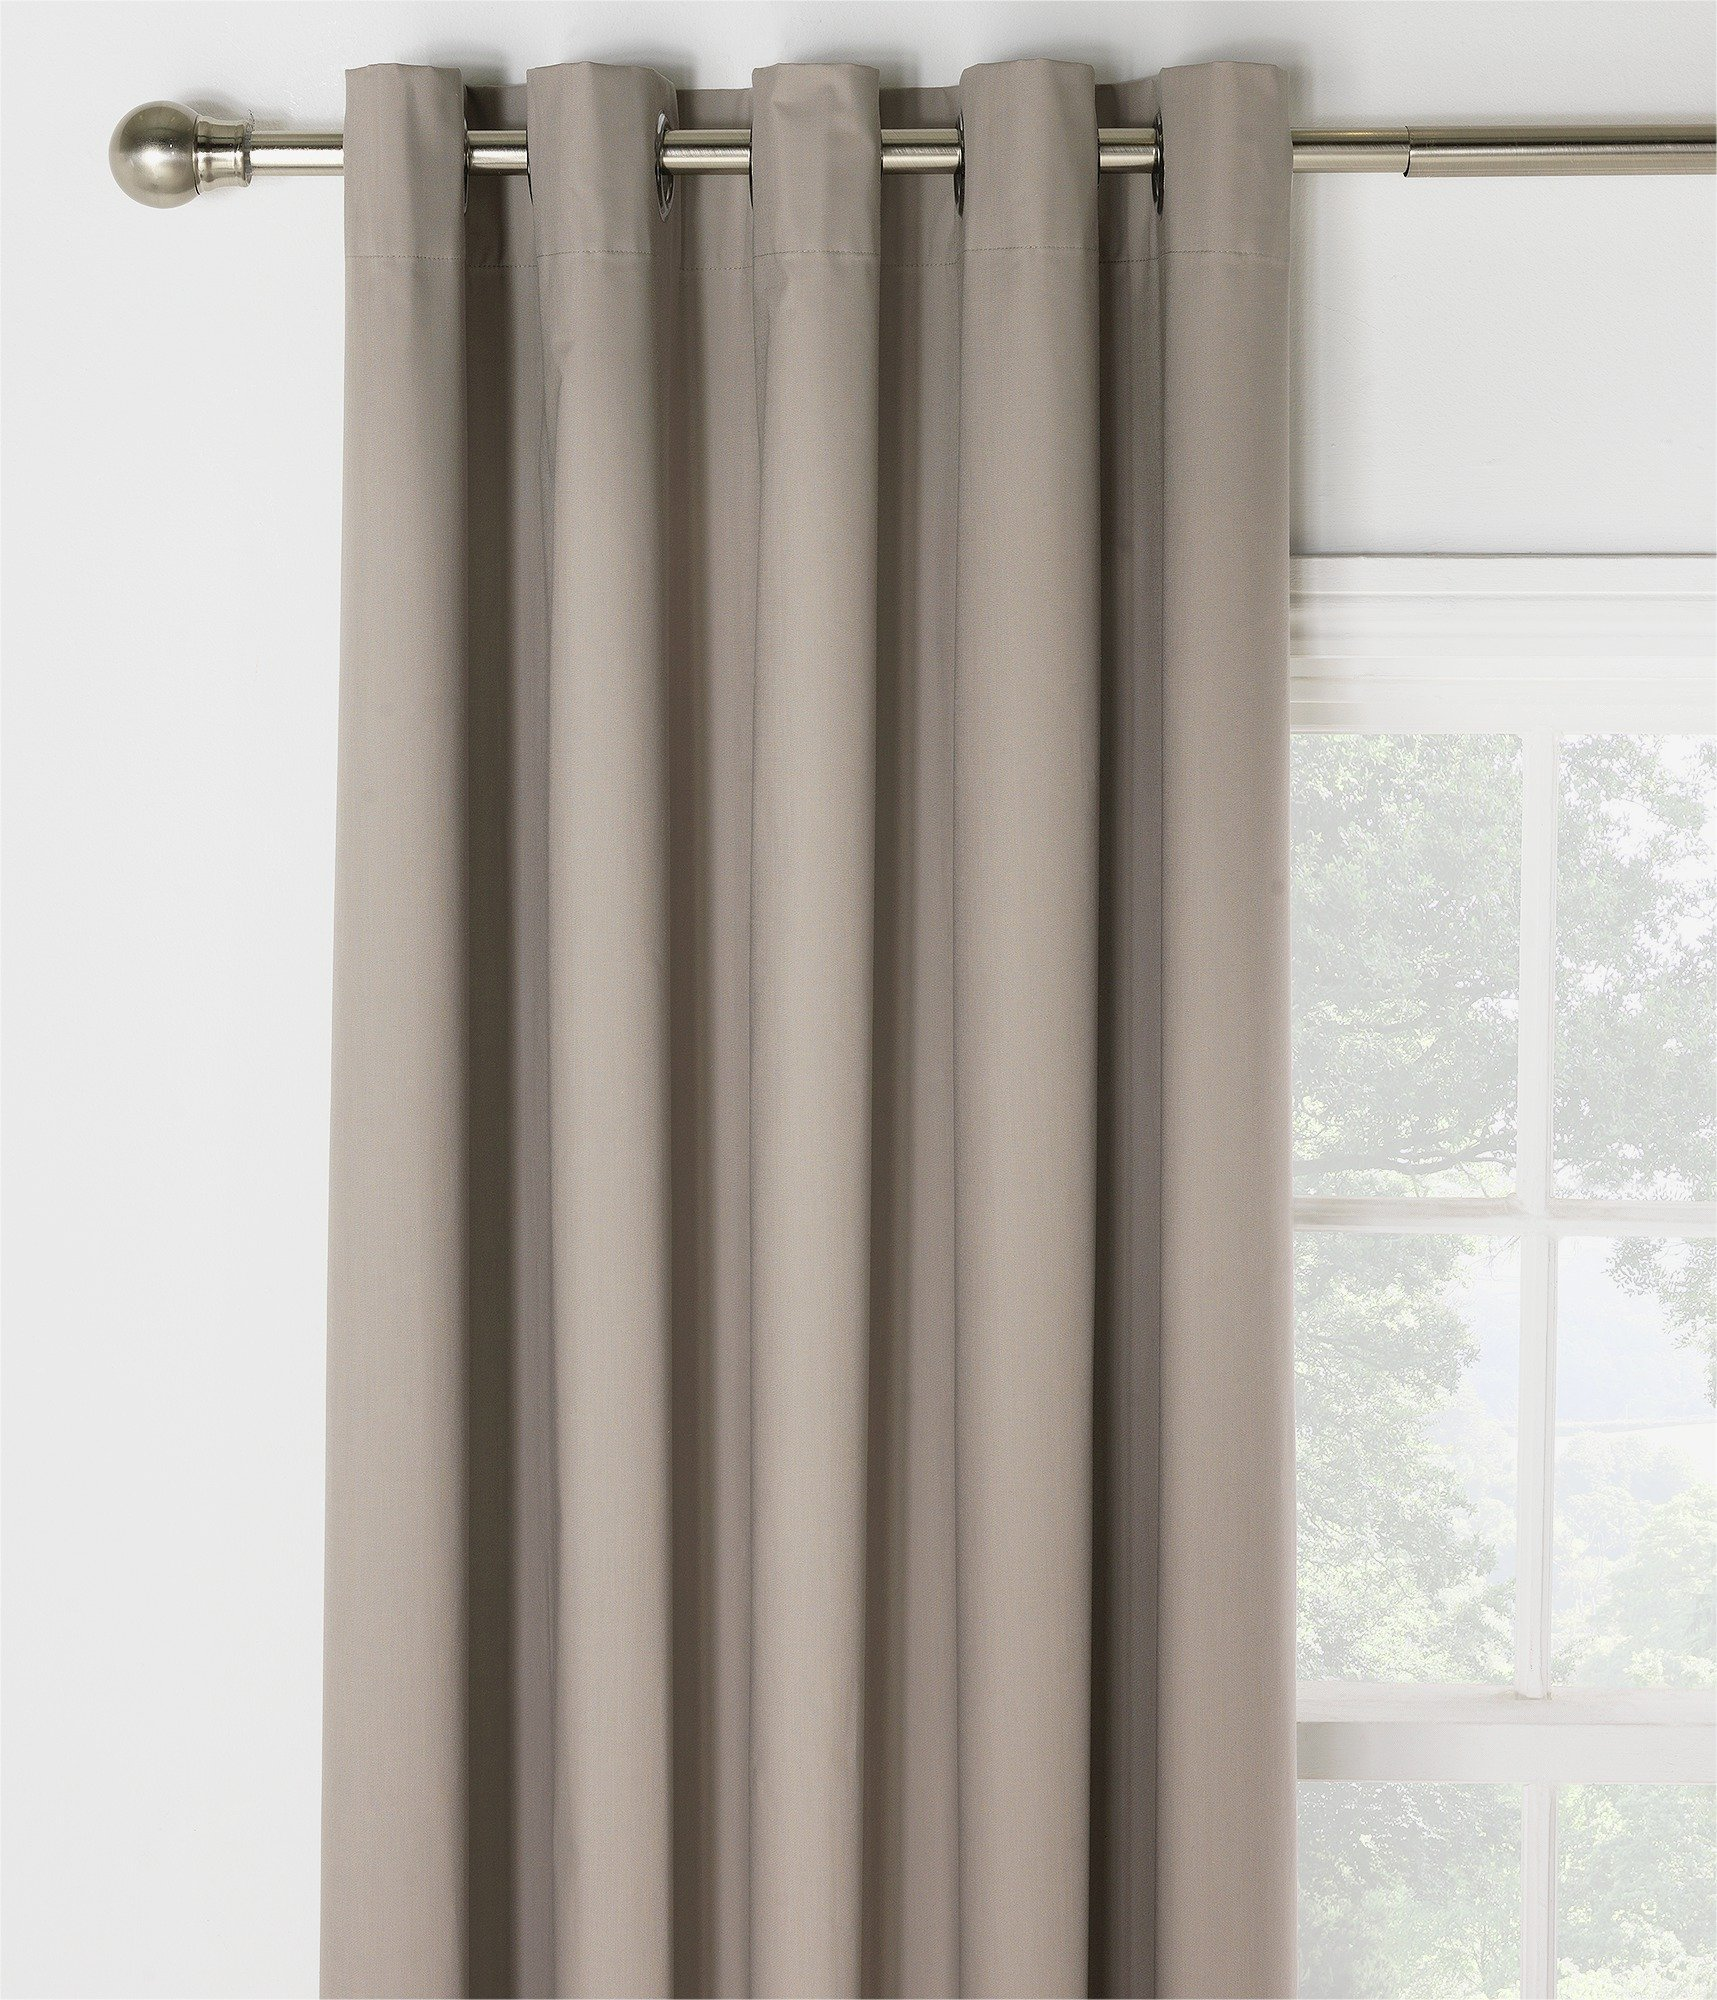 HOME Blackout Thermal Curtains-117x183cm -Cafe Mocha.